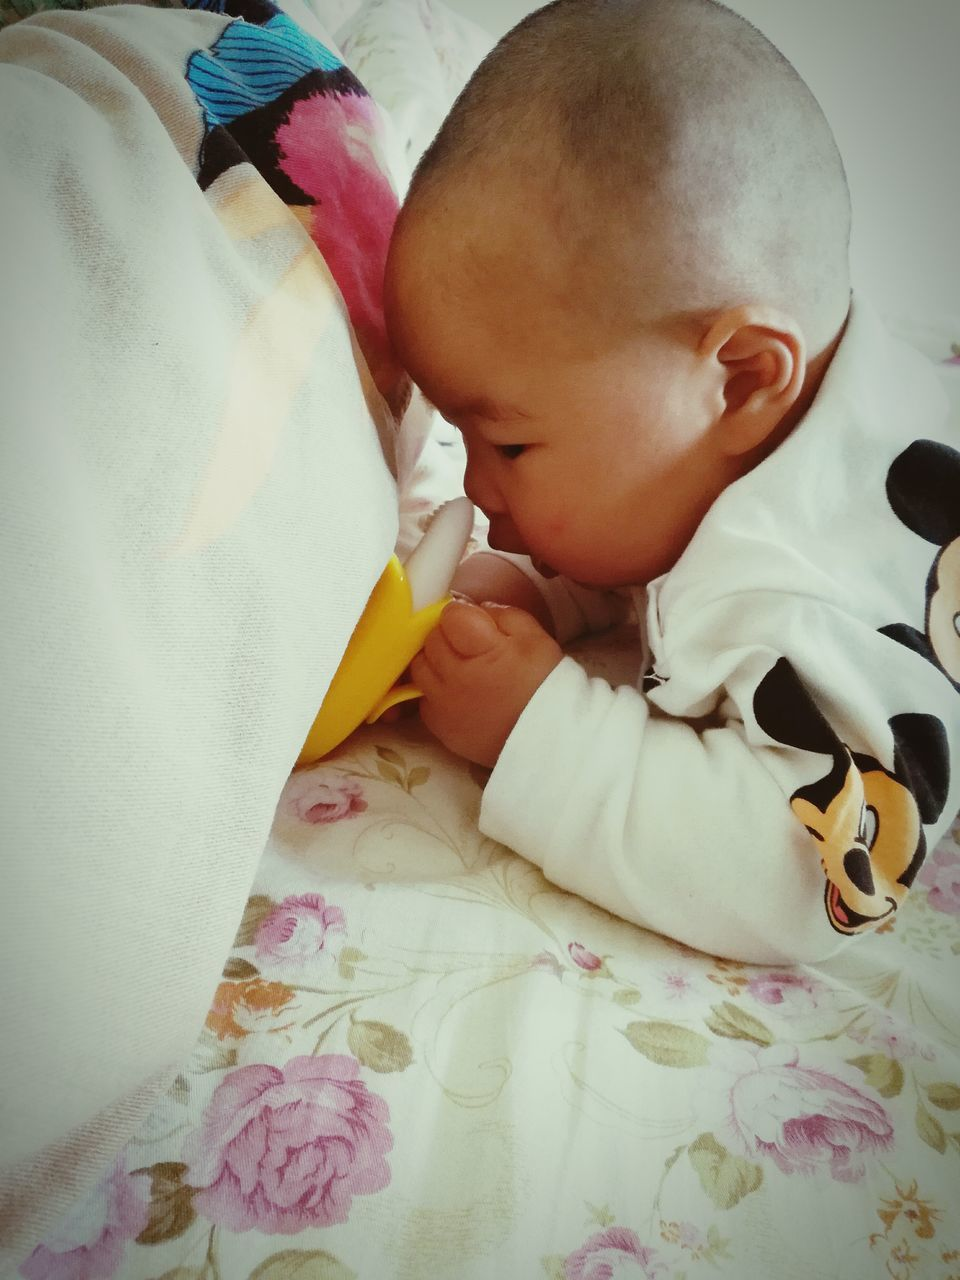 baby, babyhood, sleeping, newborn, innocence, indoors, childhood, cute, fragility, toddler, real people, bed, new life, holding, eyes closed, love, pacifier, sucking, babies only, lying down, two people, close-up, togetherness, full length, bedroom, day, people